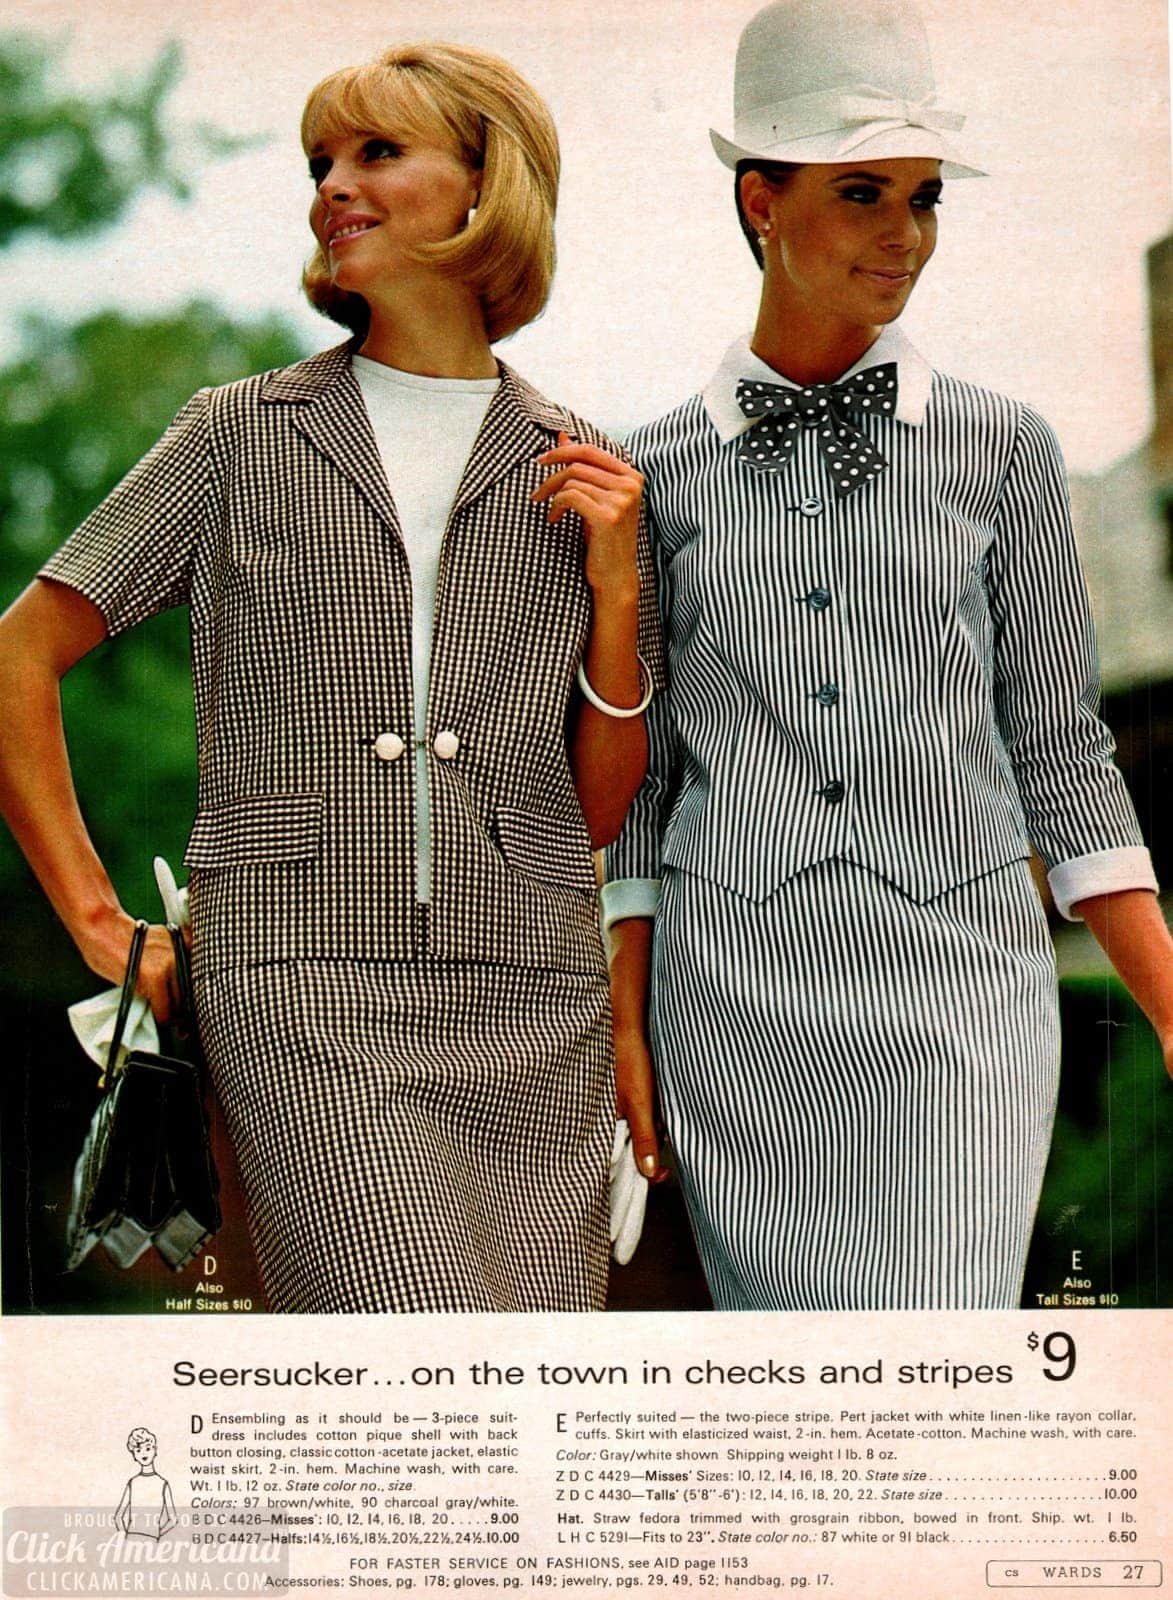 Seersucker dresses with jackets from the sixties, in checks and stripes